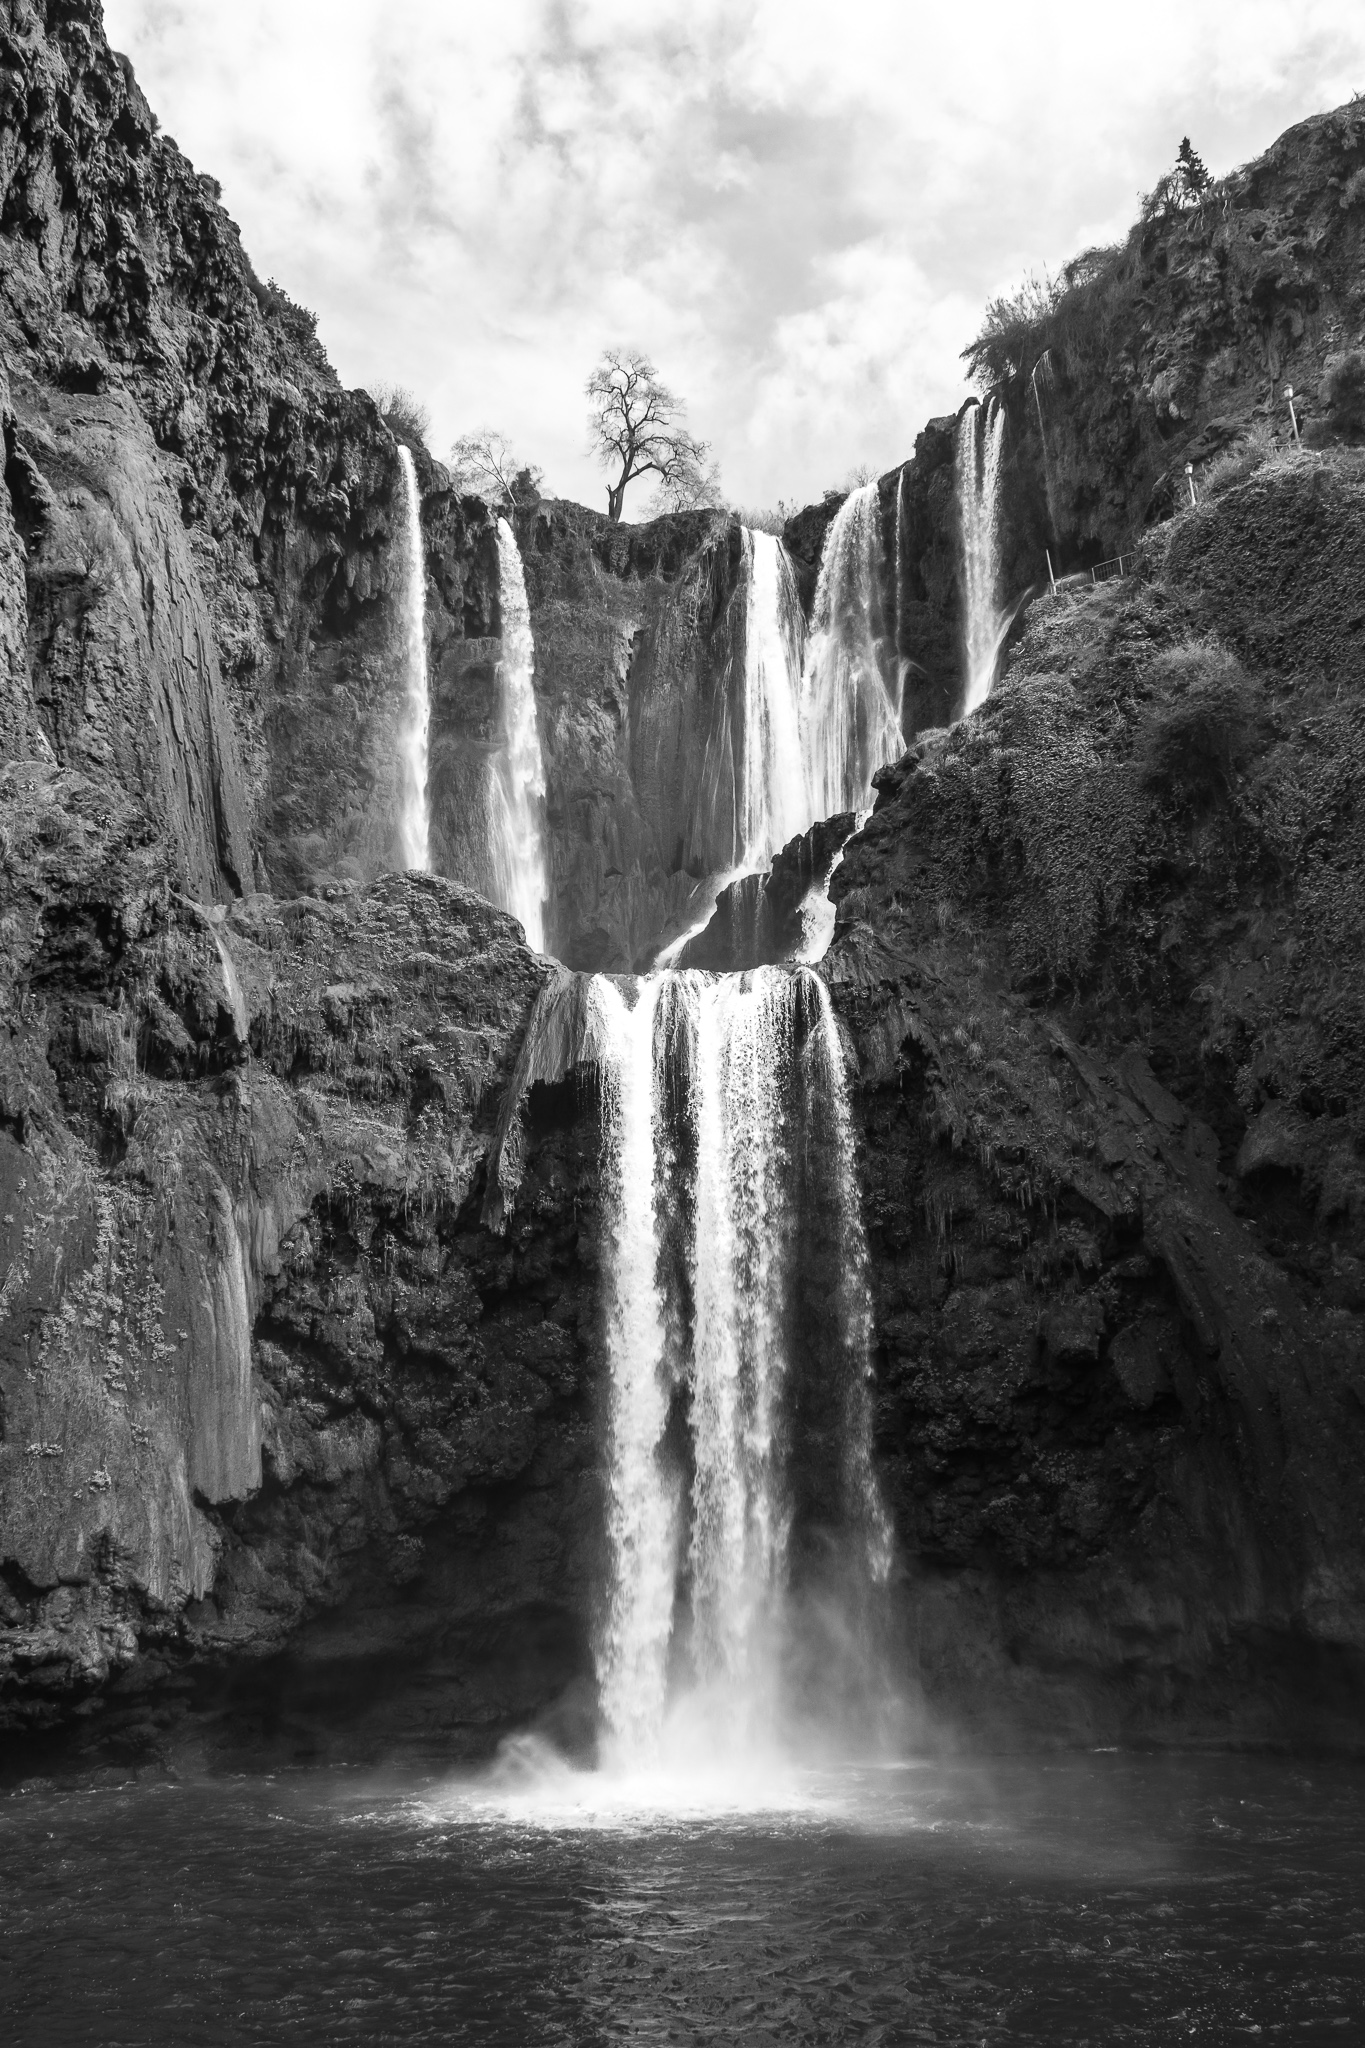 The Waterfalls of Ouzoud are located at the foot of the village of Tanaghmeilt, province of Azilal. <br> Its name in the Berber language means 'olives', due to the large amount of this type of trees that can be found in the area. <br> With a height of 110m and three distinct streams, the waterfalls of Ouzoud are the largest waterfalls in North Africa and probably the most impressive.